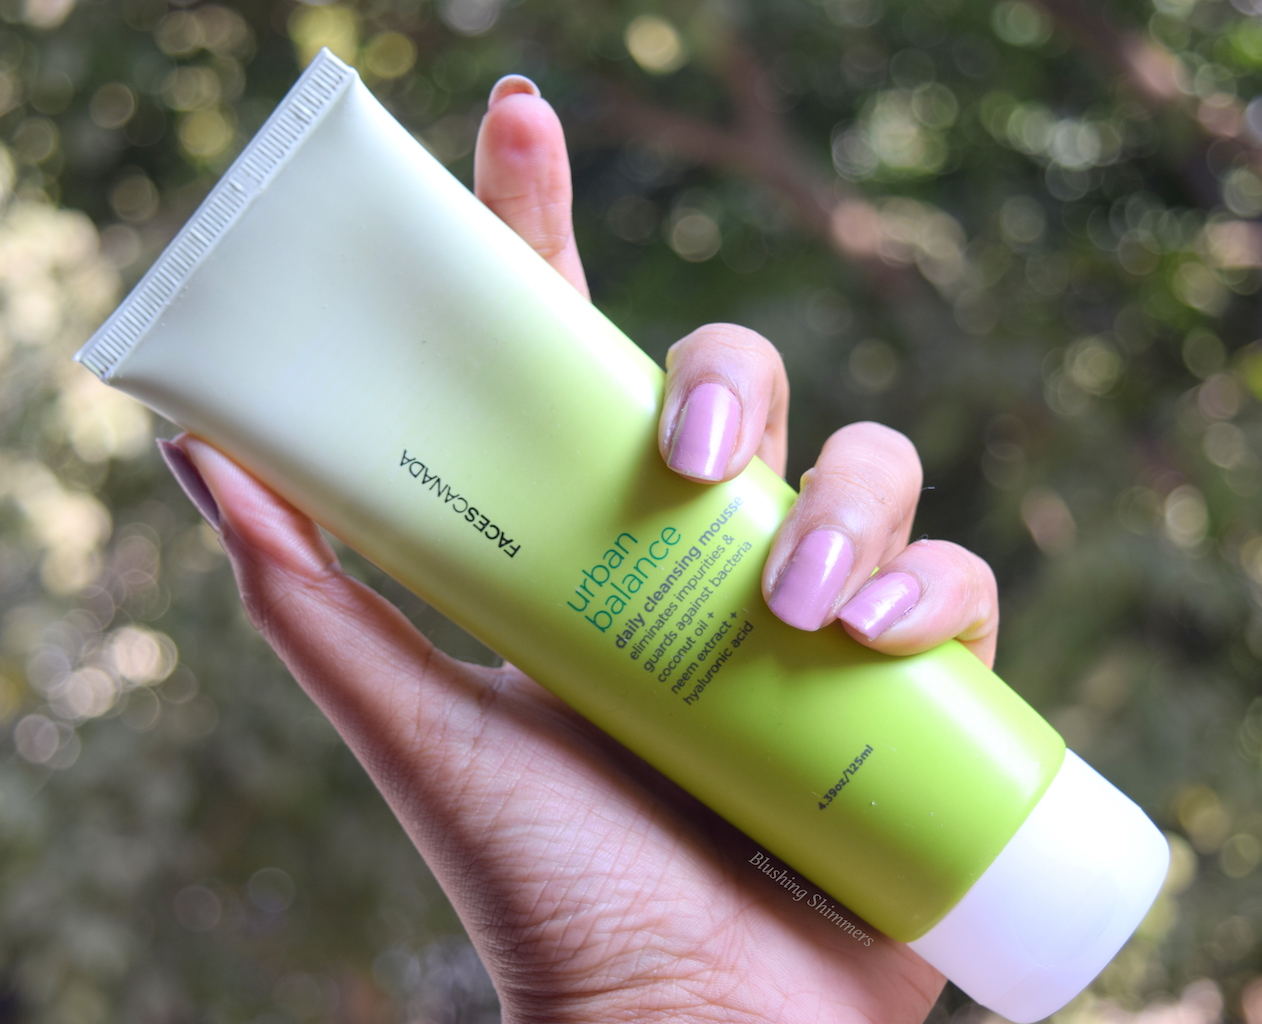 Faces Urban Balance Daily Cleansing Mousse